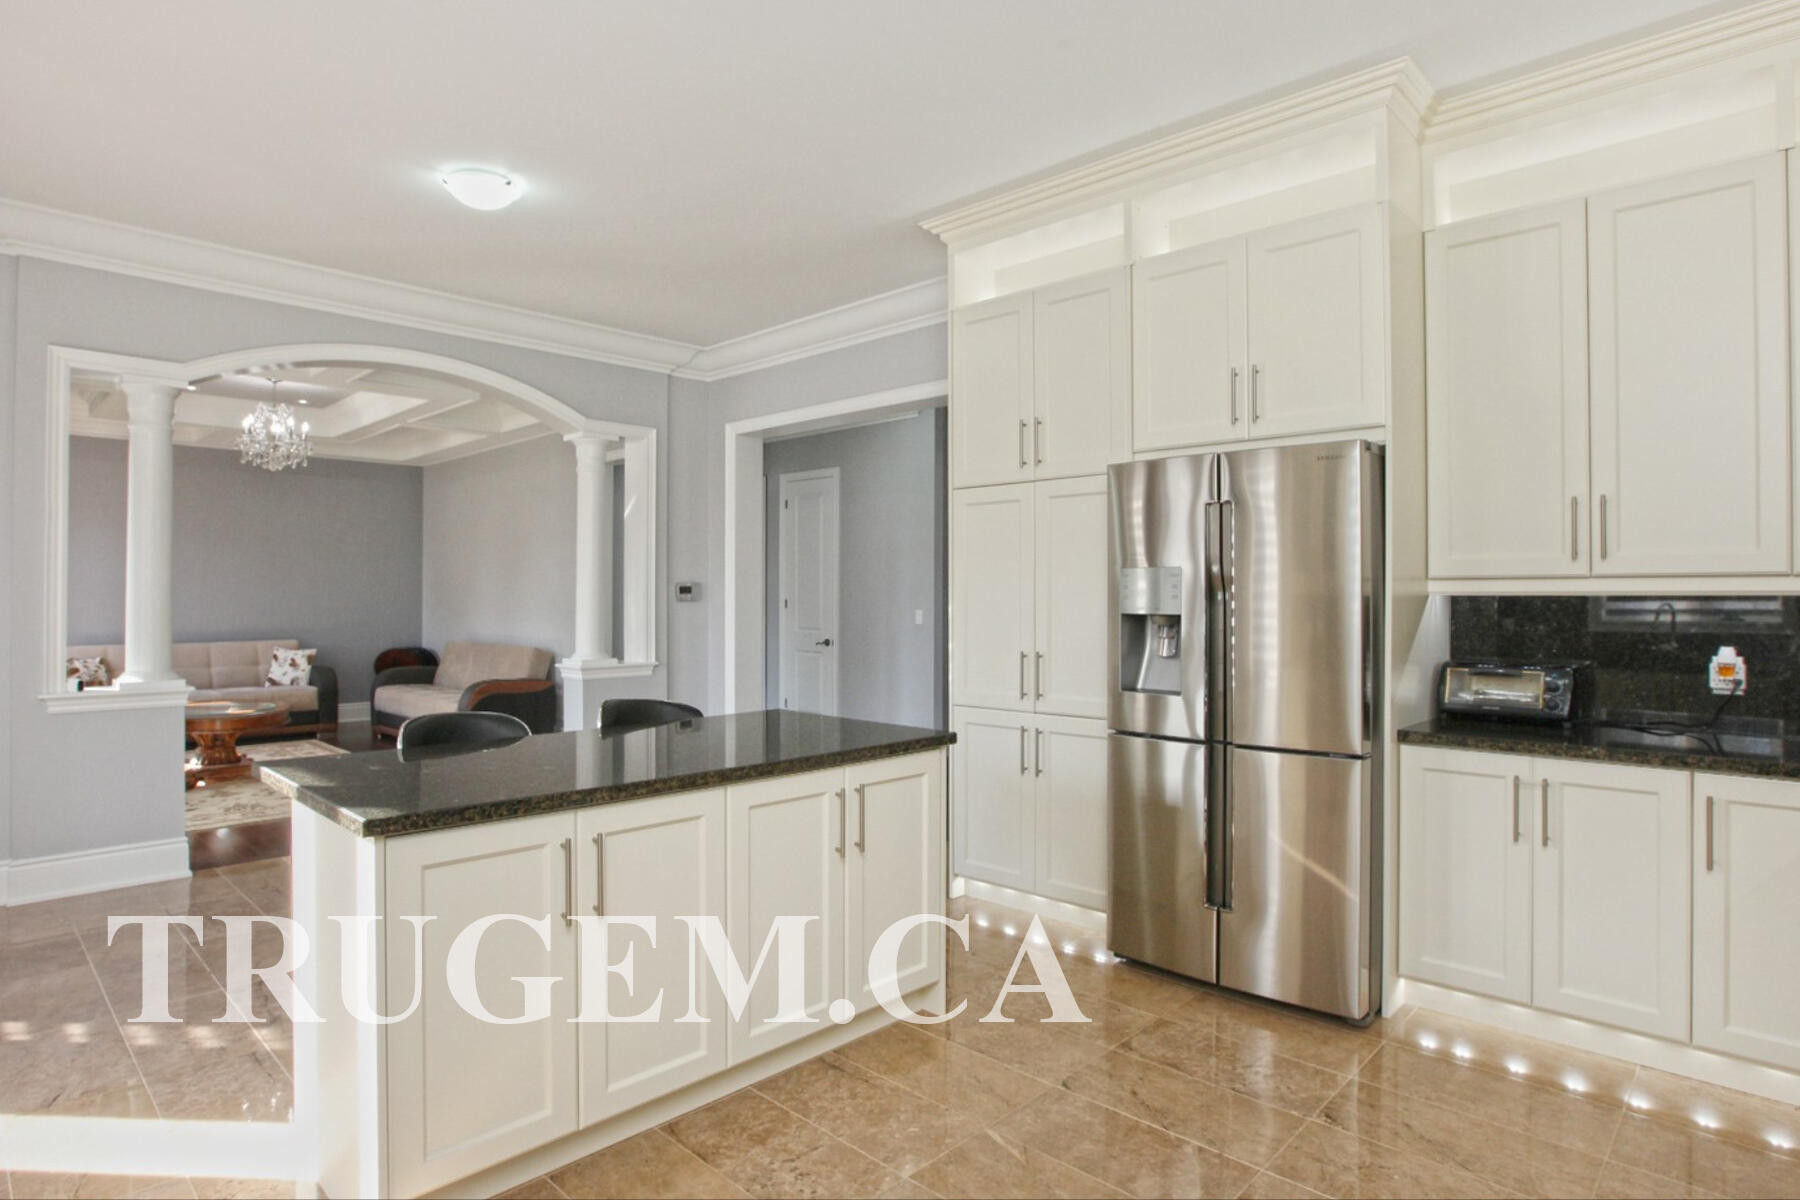 off white cabinets with dark countertops